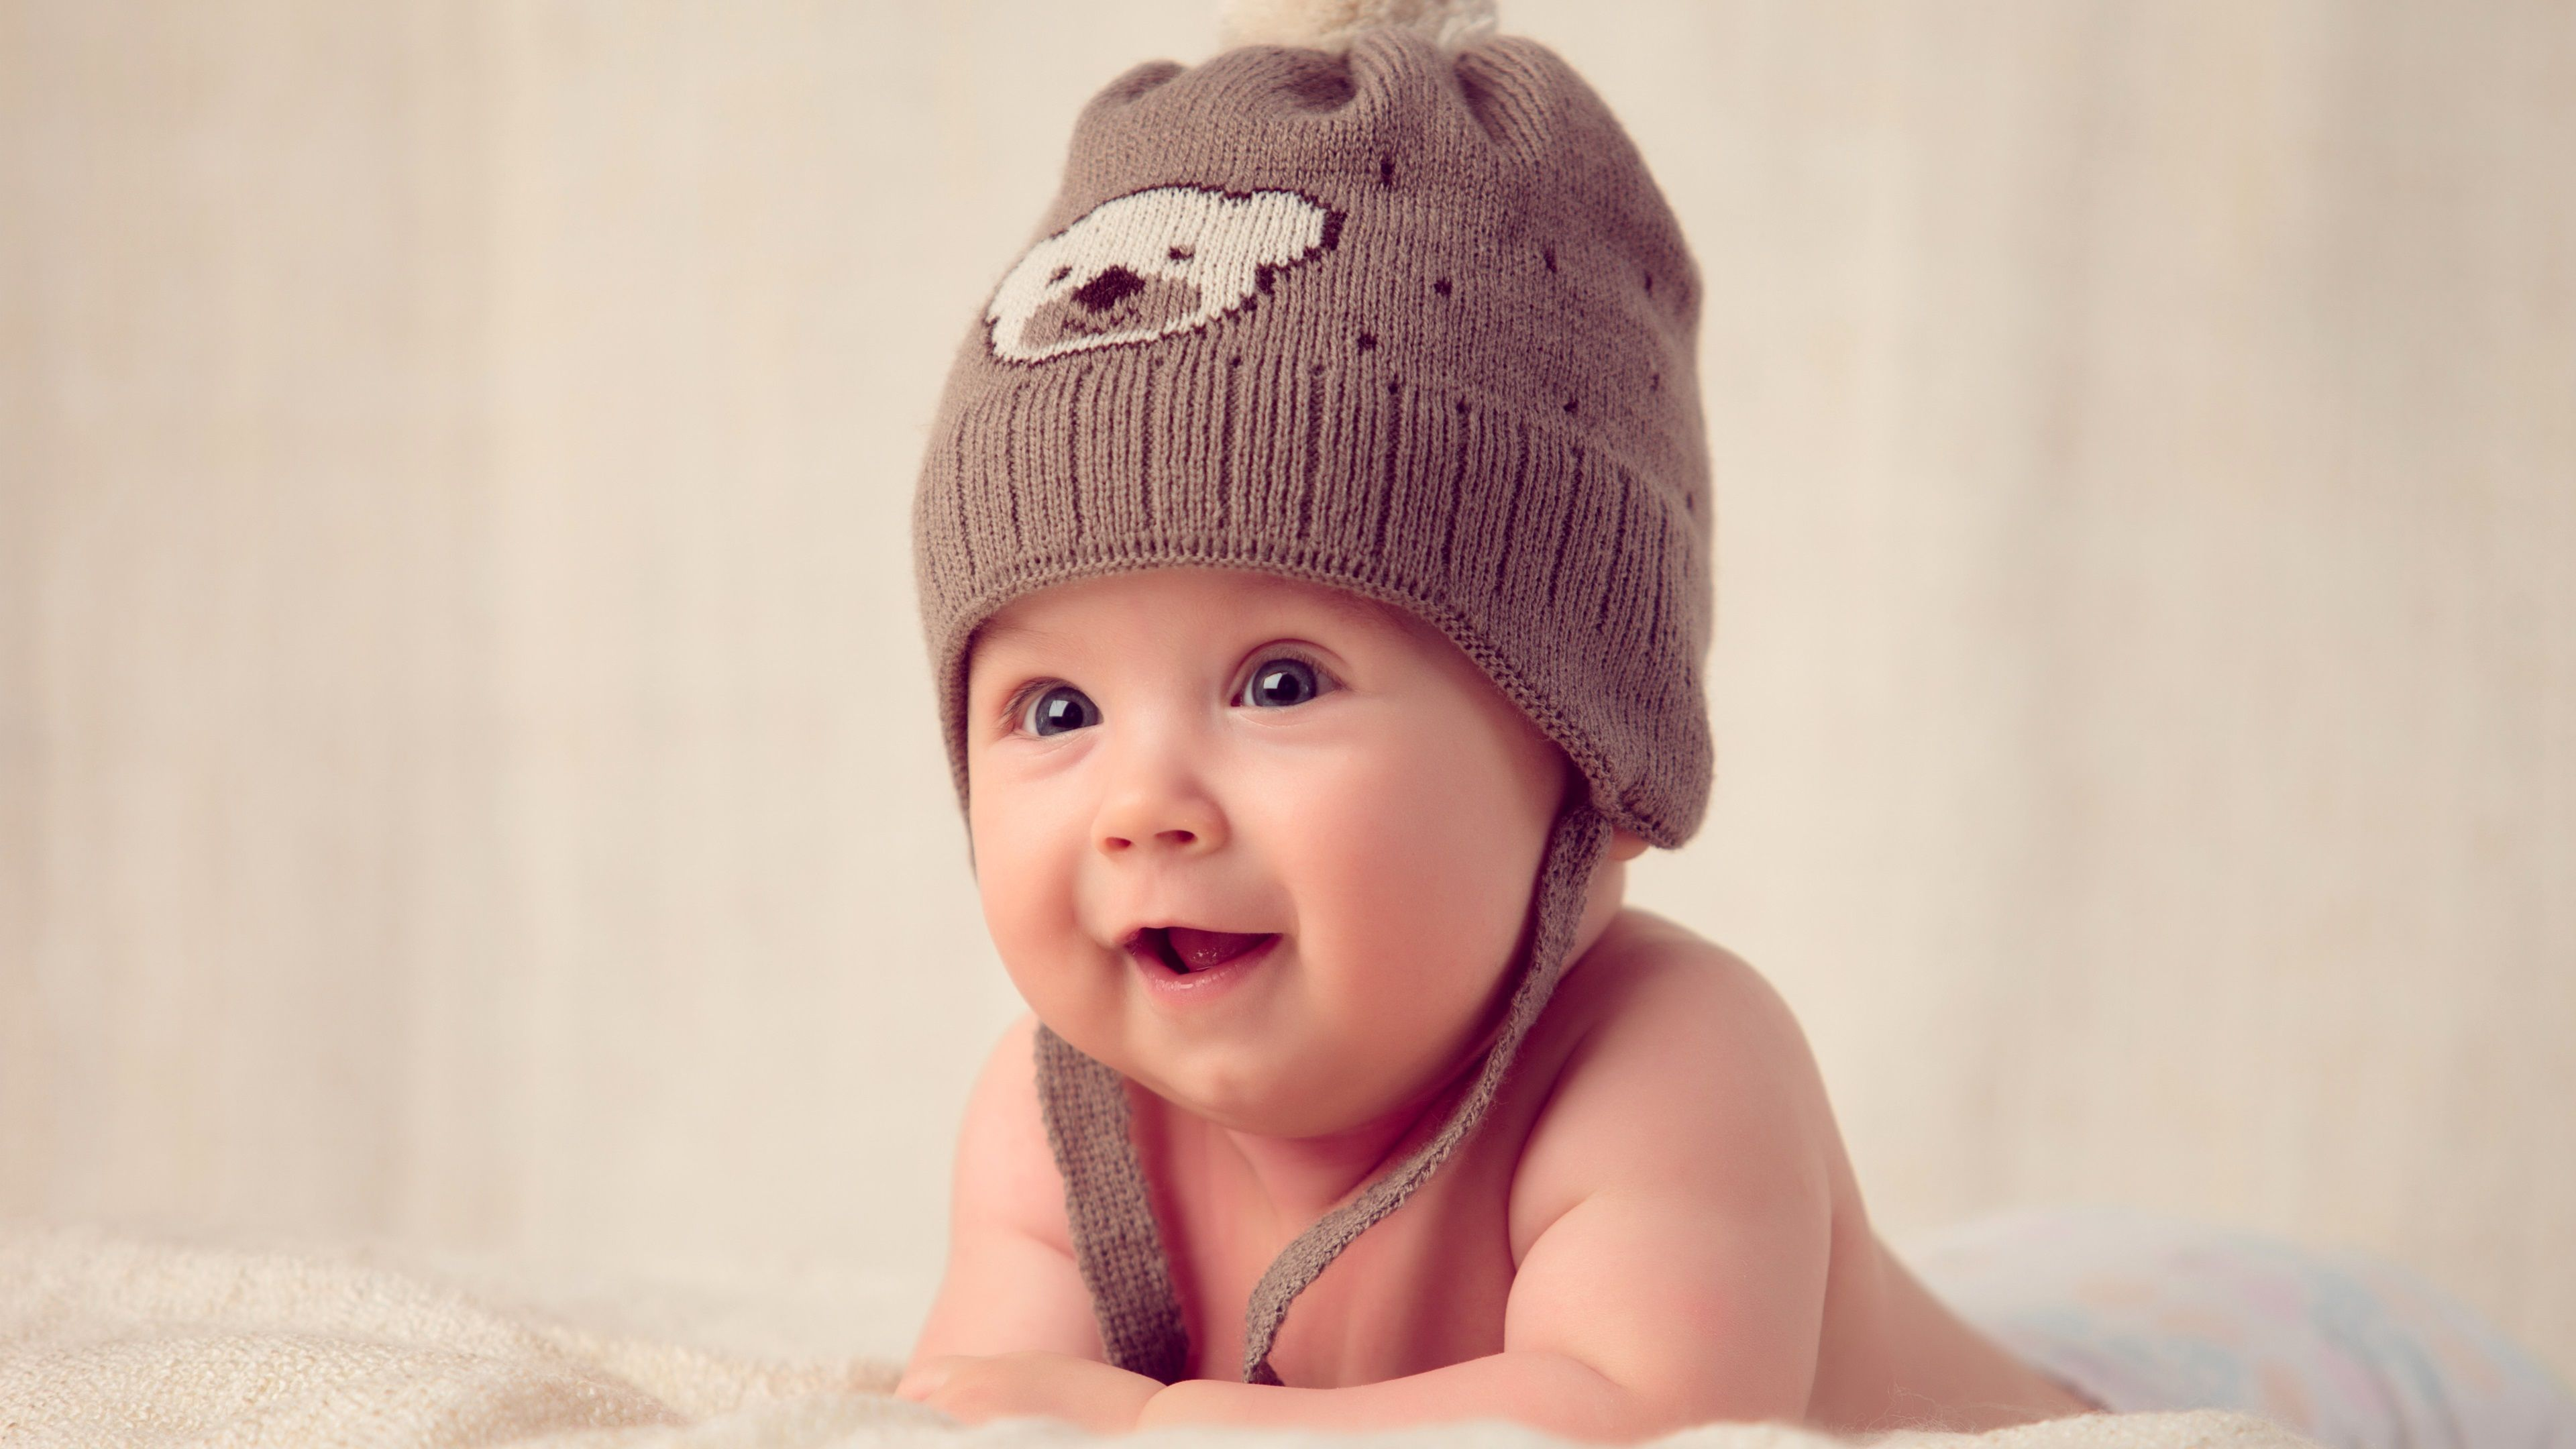 Cute Baby Wallpapers Picture - Cute Baby Pic Of Dp , HD Wallpaper & Backgrounds